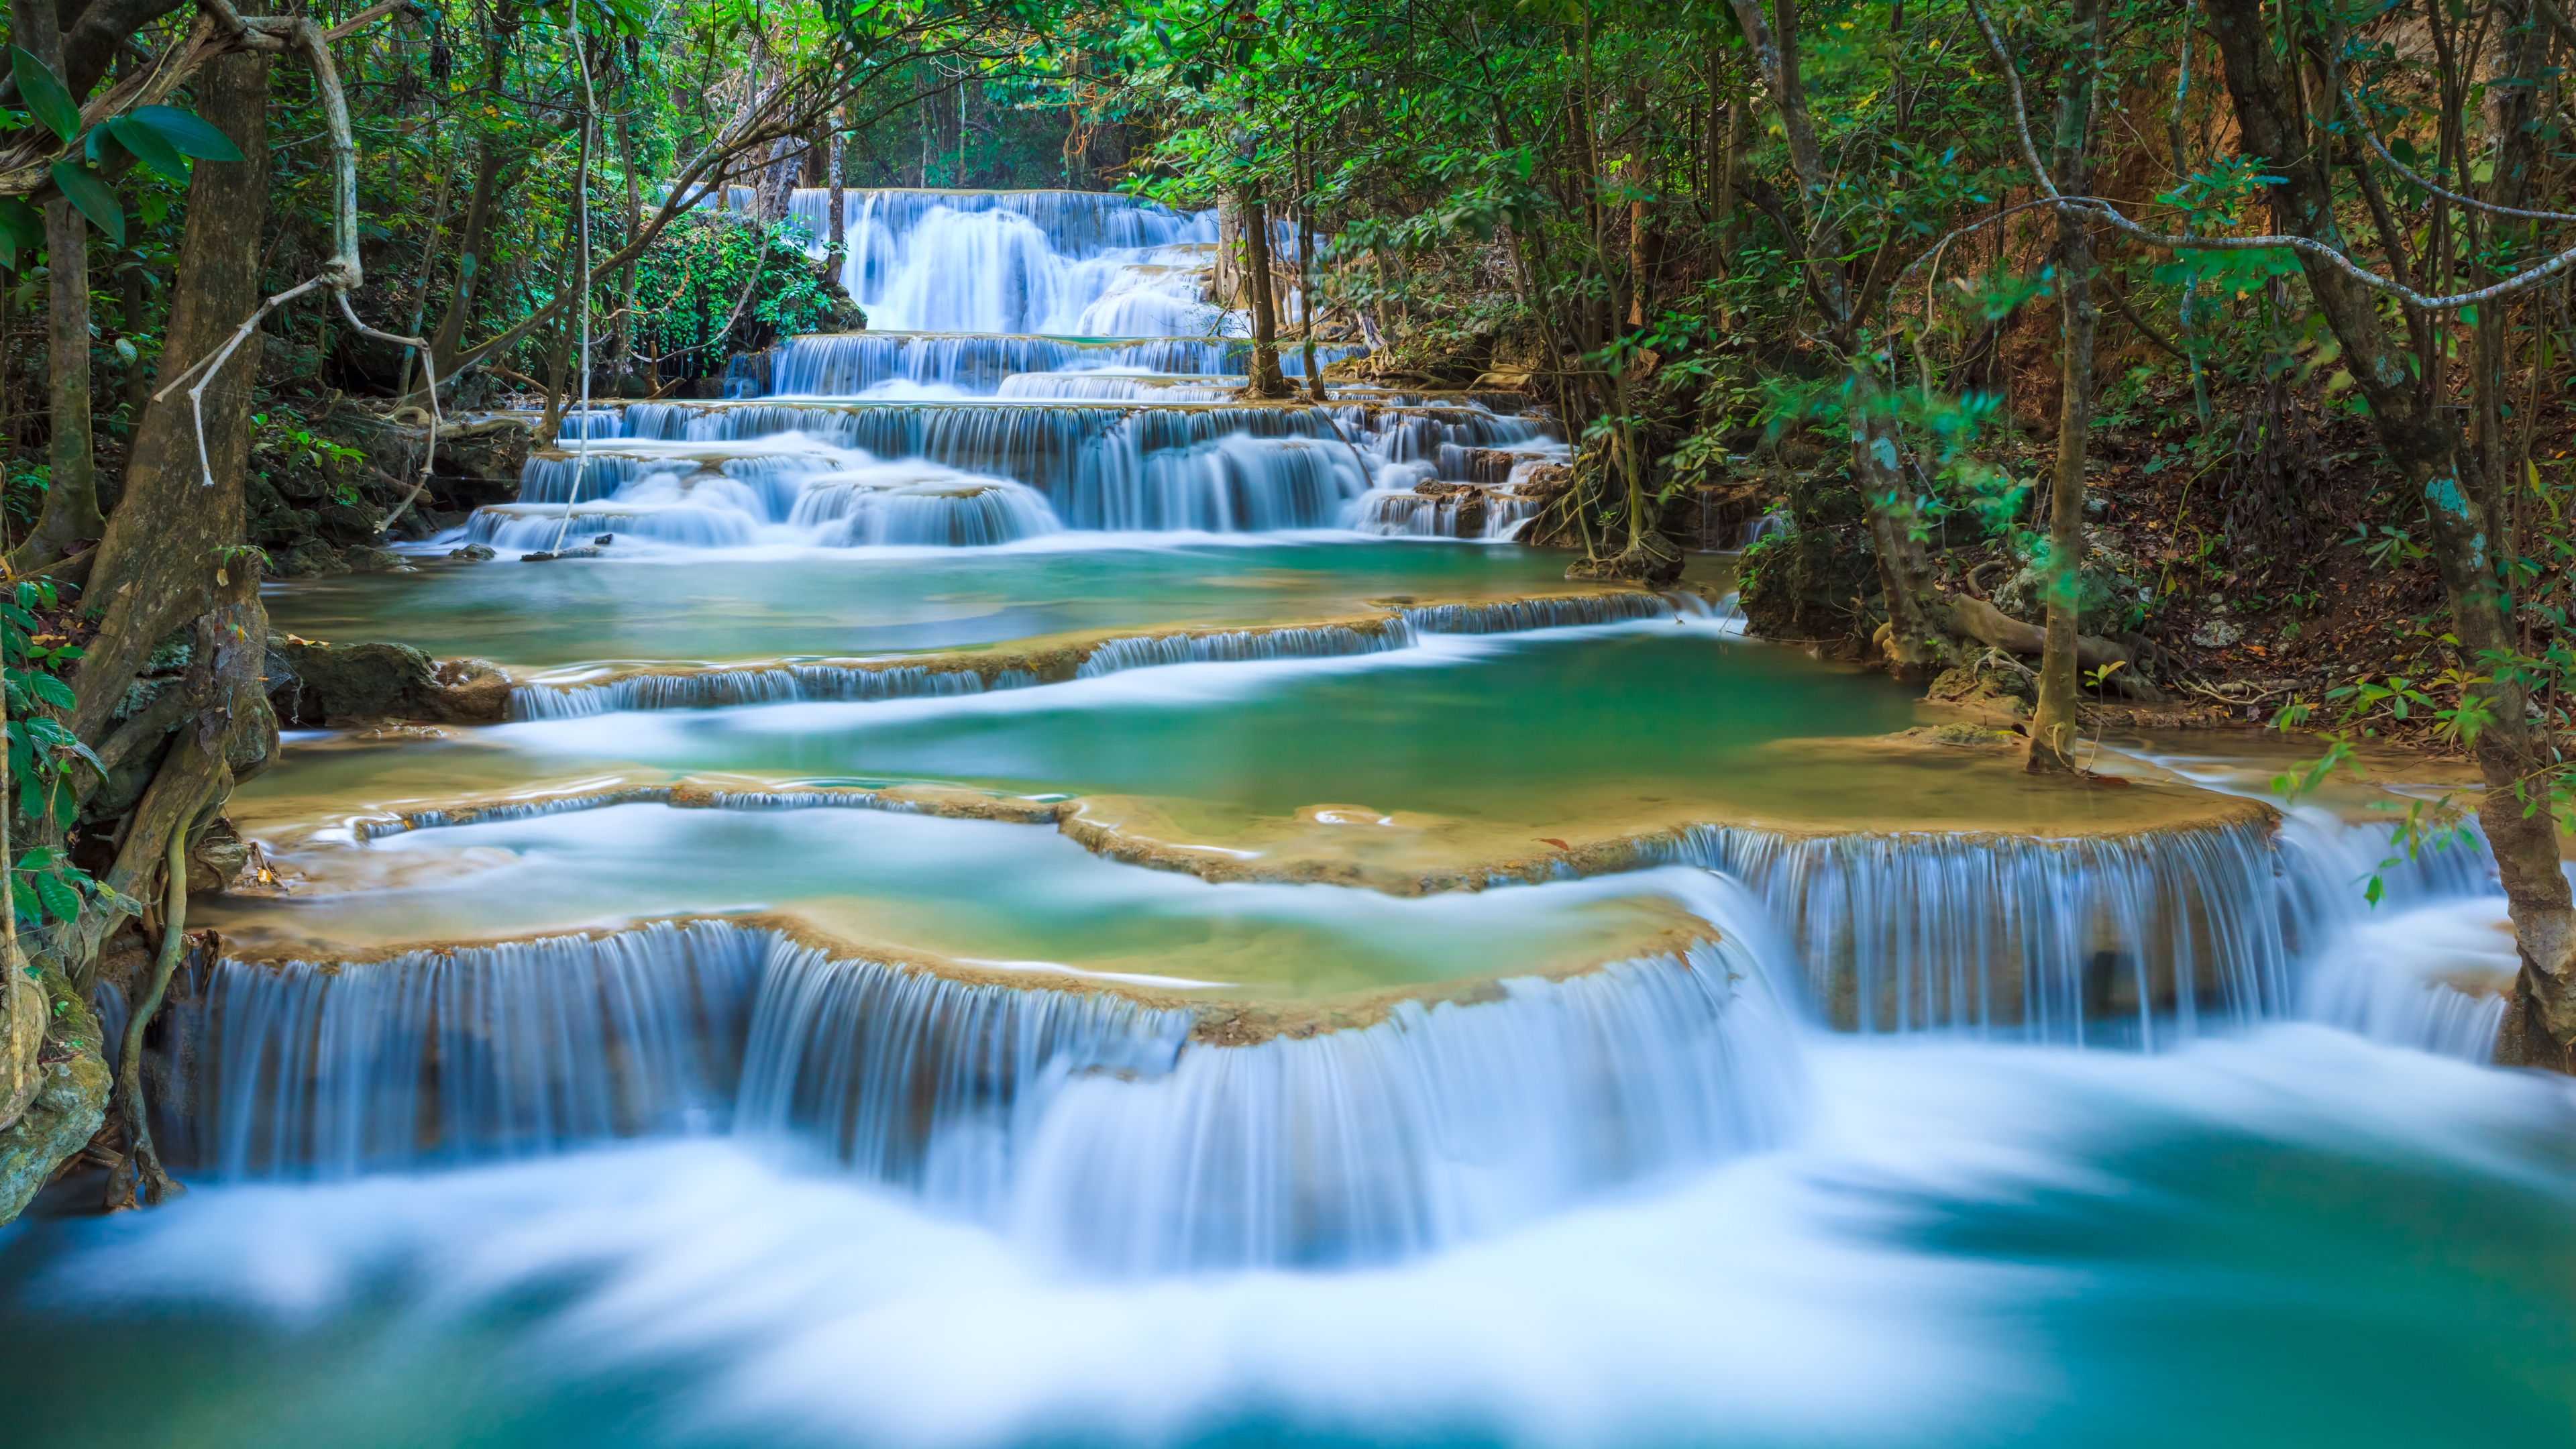 1920x1080 Hd Wallpapers Waterfall: 15 Erawan Waterfall HD Wallpapers